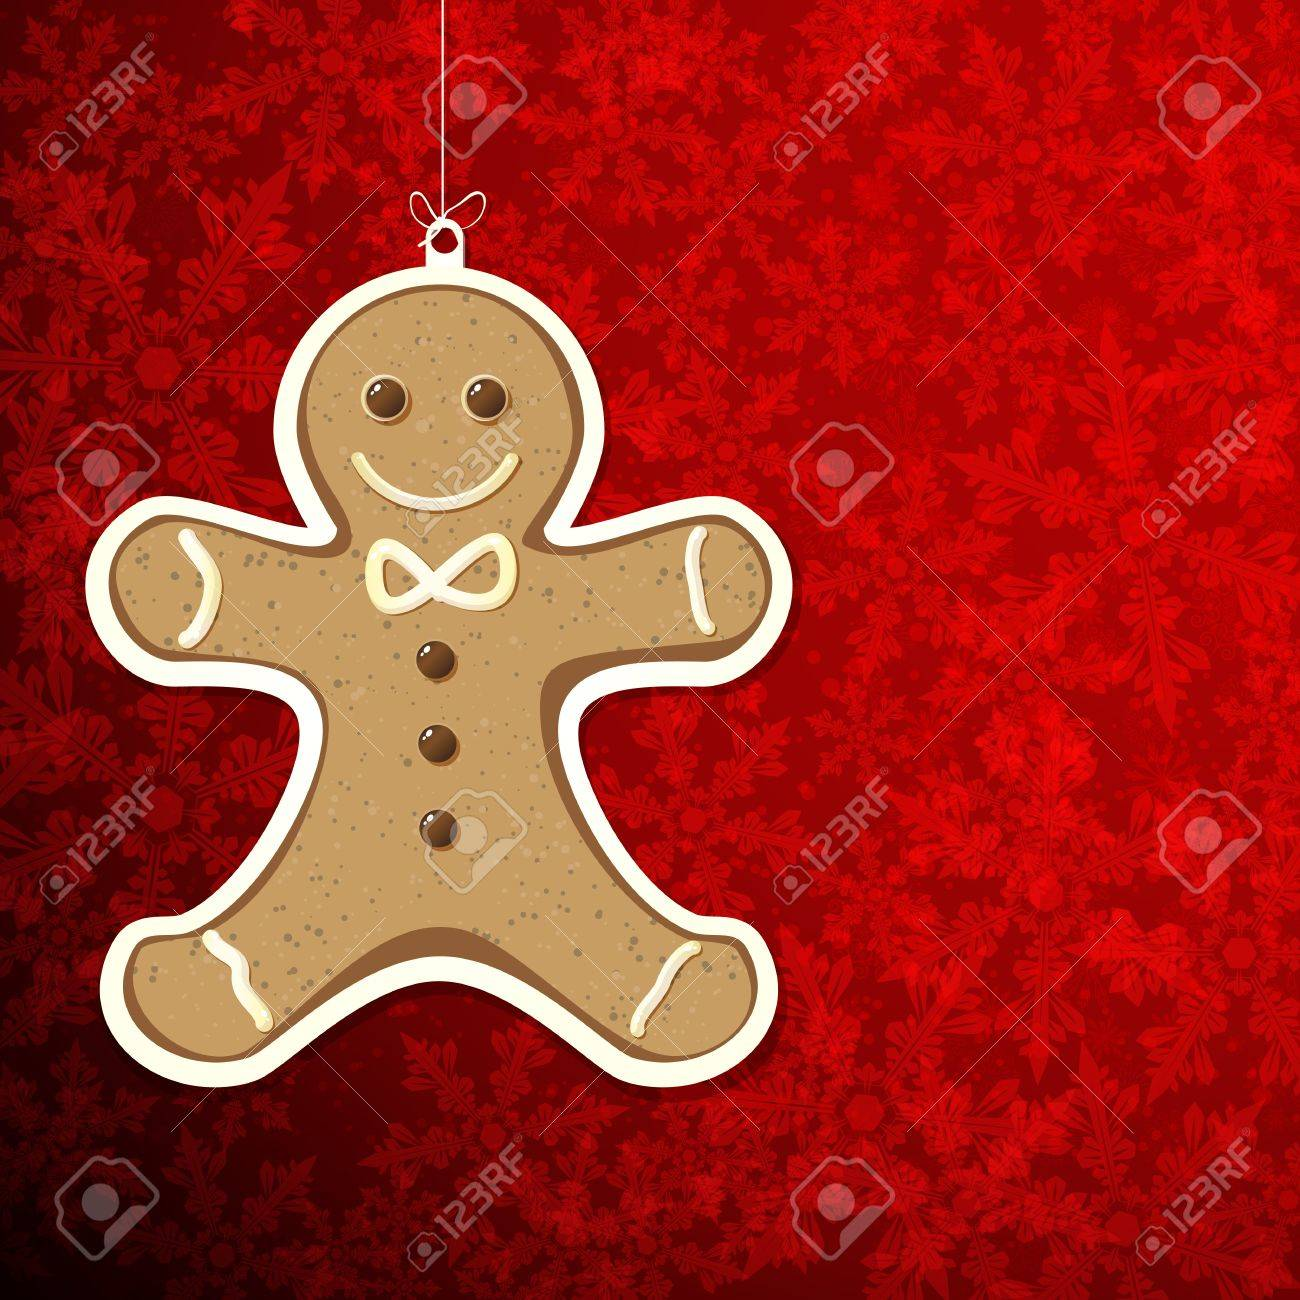 Christmas background with gingerbread man. Stock Vector - 16374067